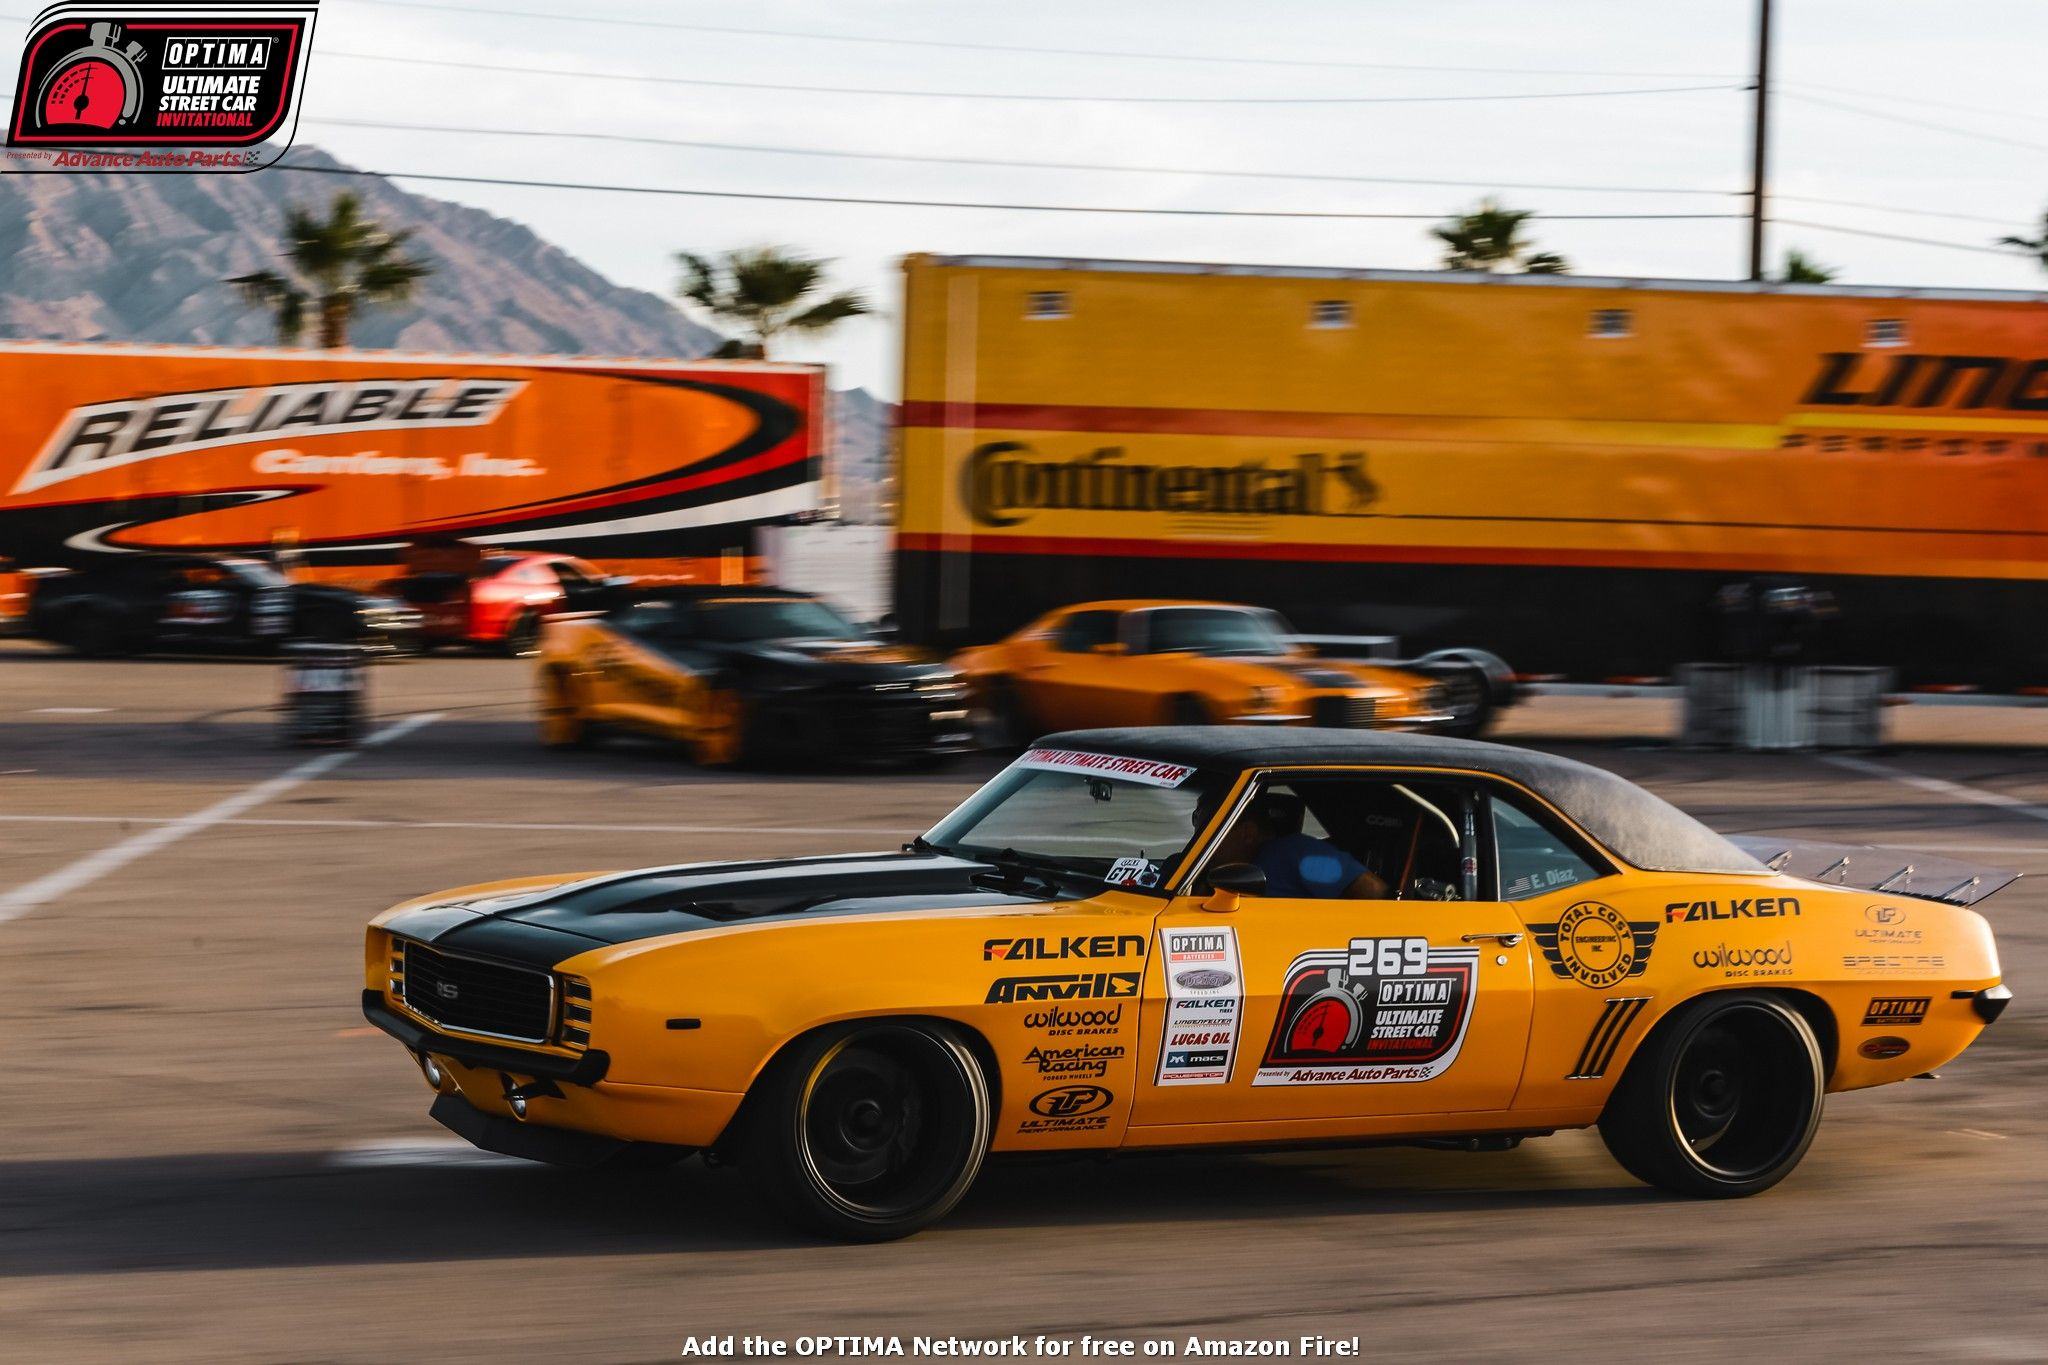 Efrain Diaz's 1969 Chevrolet Camaro finished 17th overall